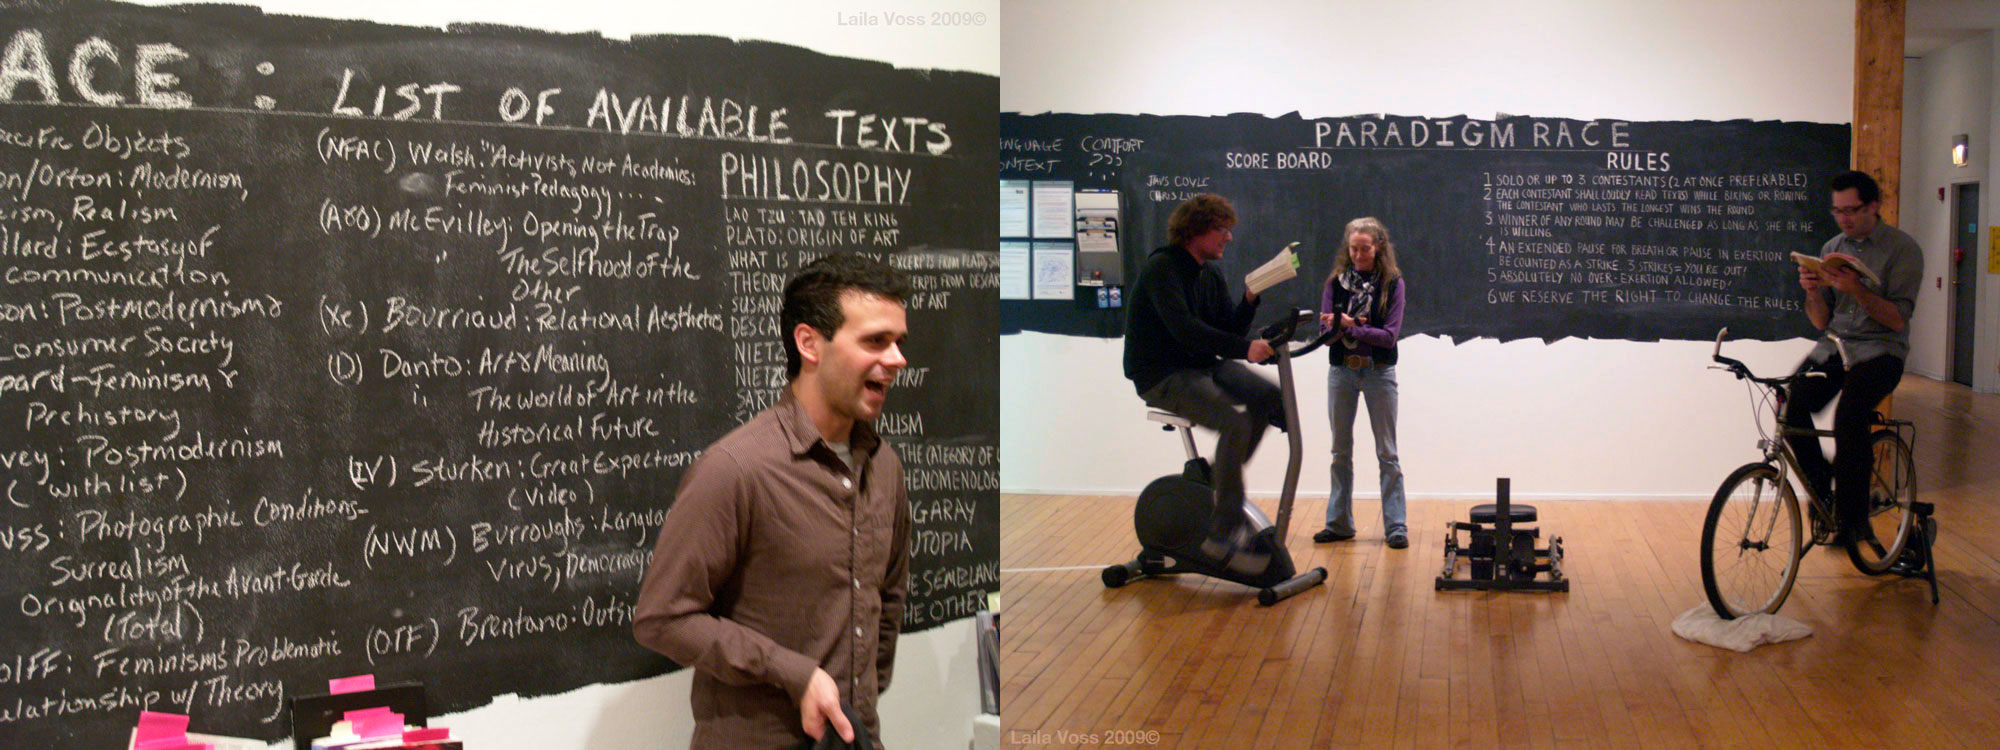 The Plum Academy, Paradigm Race competition with Laila Voss. Competitors had to race stationary biicycles while reading from dense rat theory texts. Any long pauses resulted in disqualification.